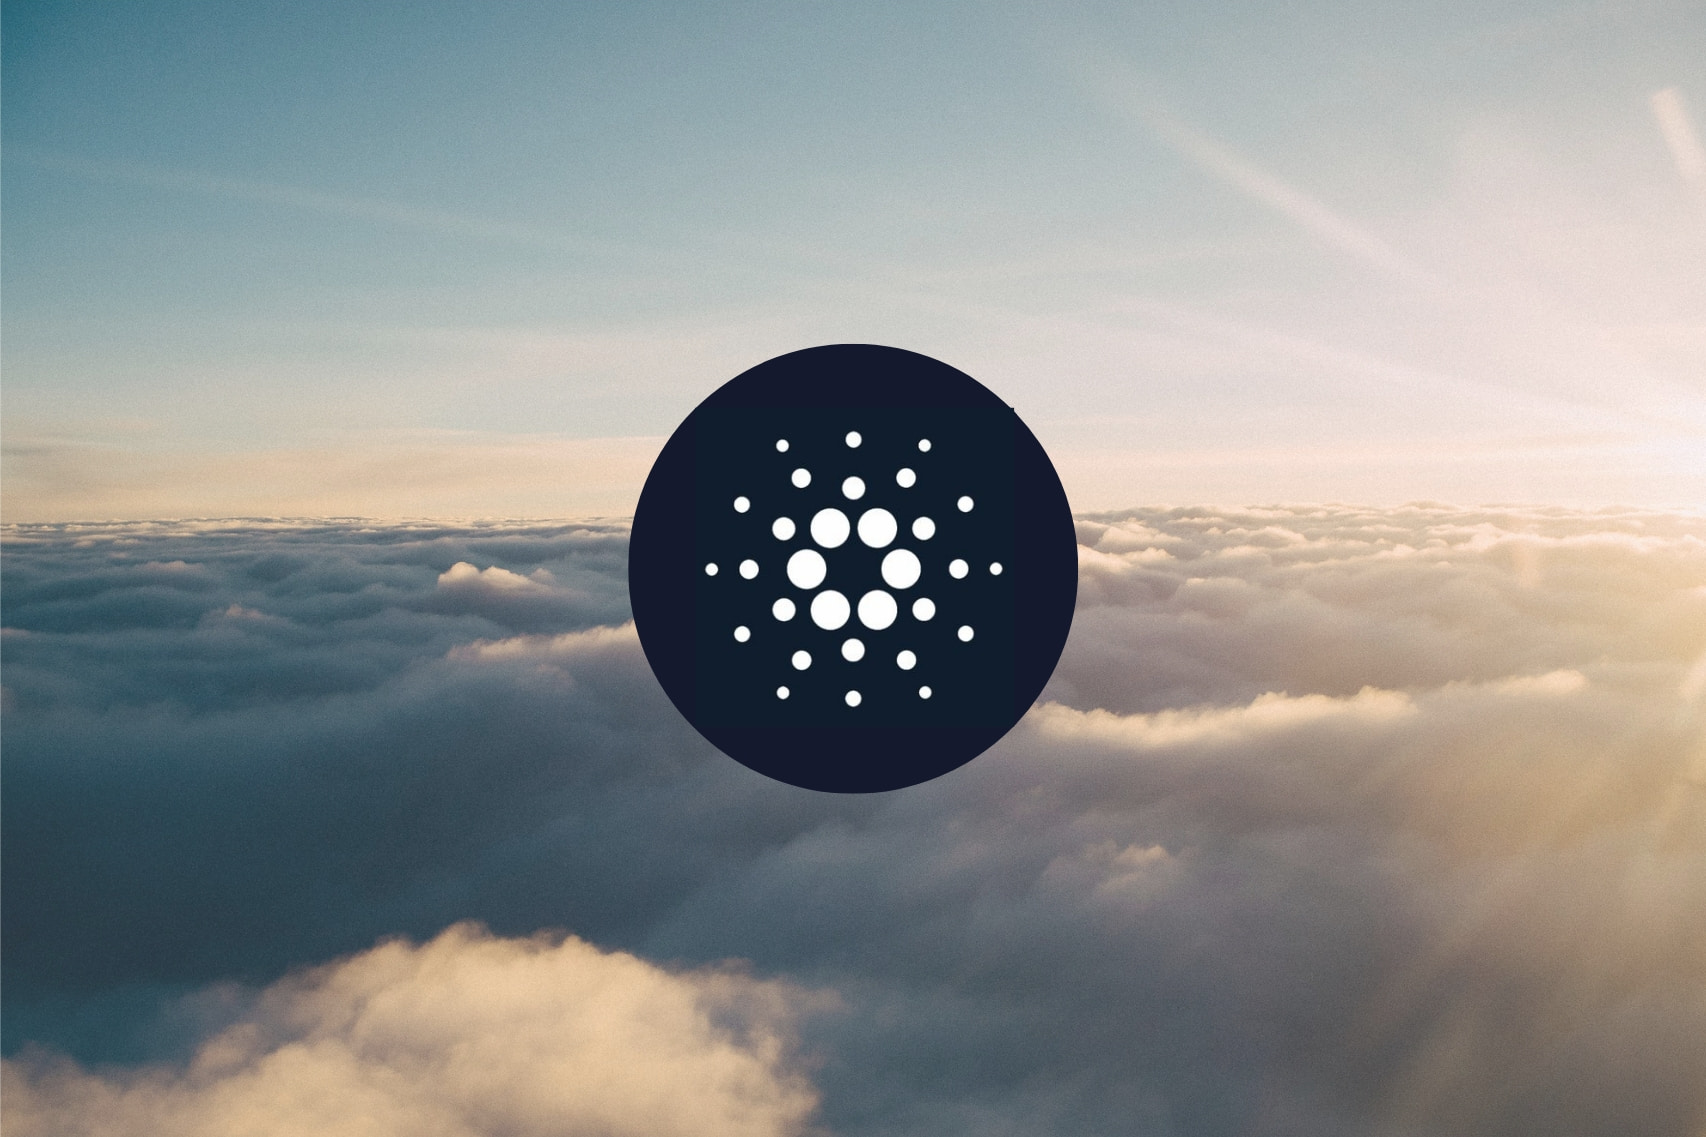 Cardano's [ADA] Price Plummets With Just Two Days Left For Shelley Launch